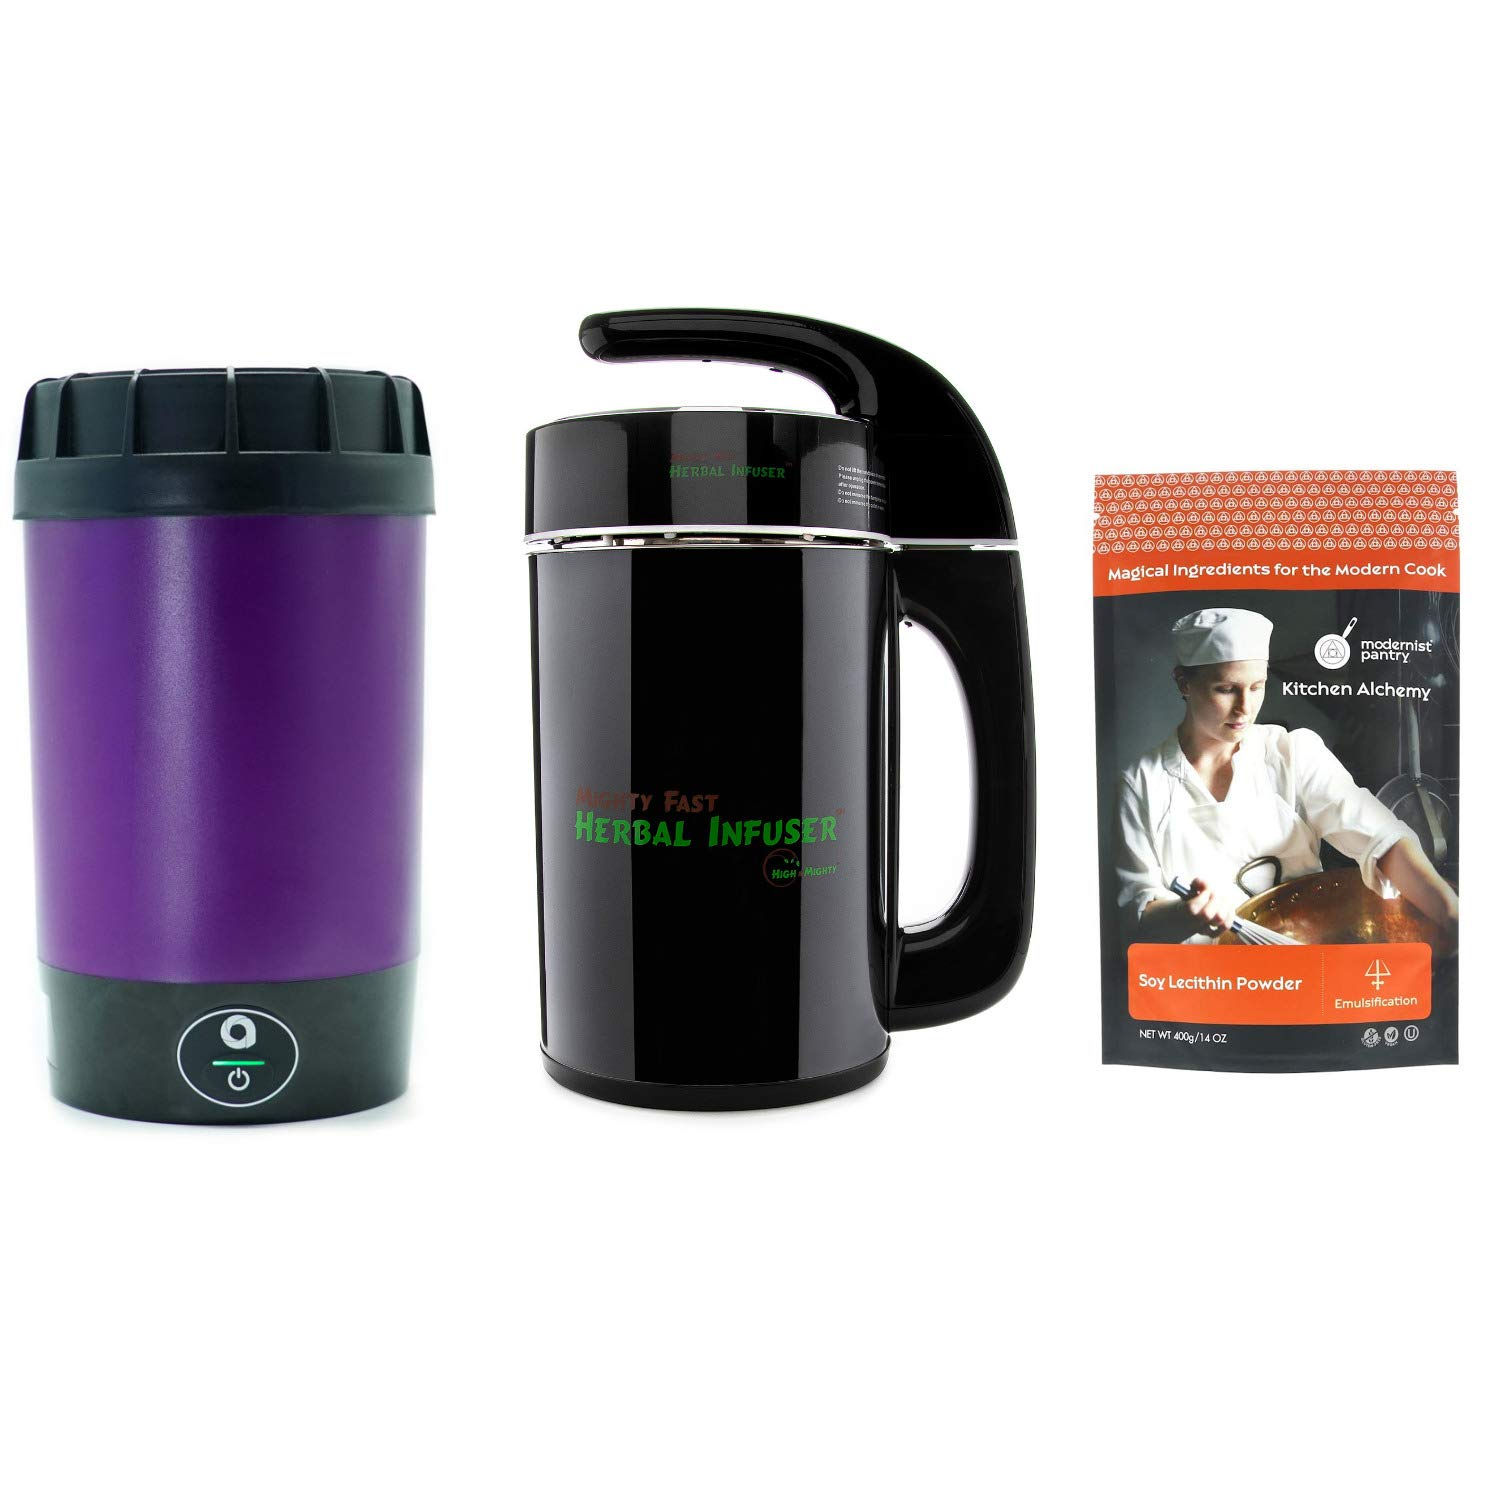 Ardent Nova & Mighty Fast Herbal Infuser with Modernist Pantry Food Grade Soy Lecithin Powder - Super Infuser Bundle